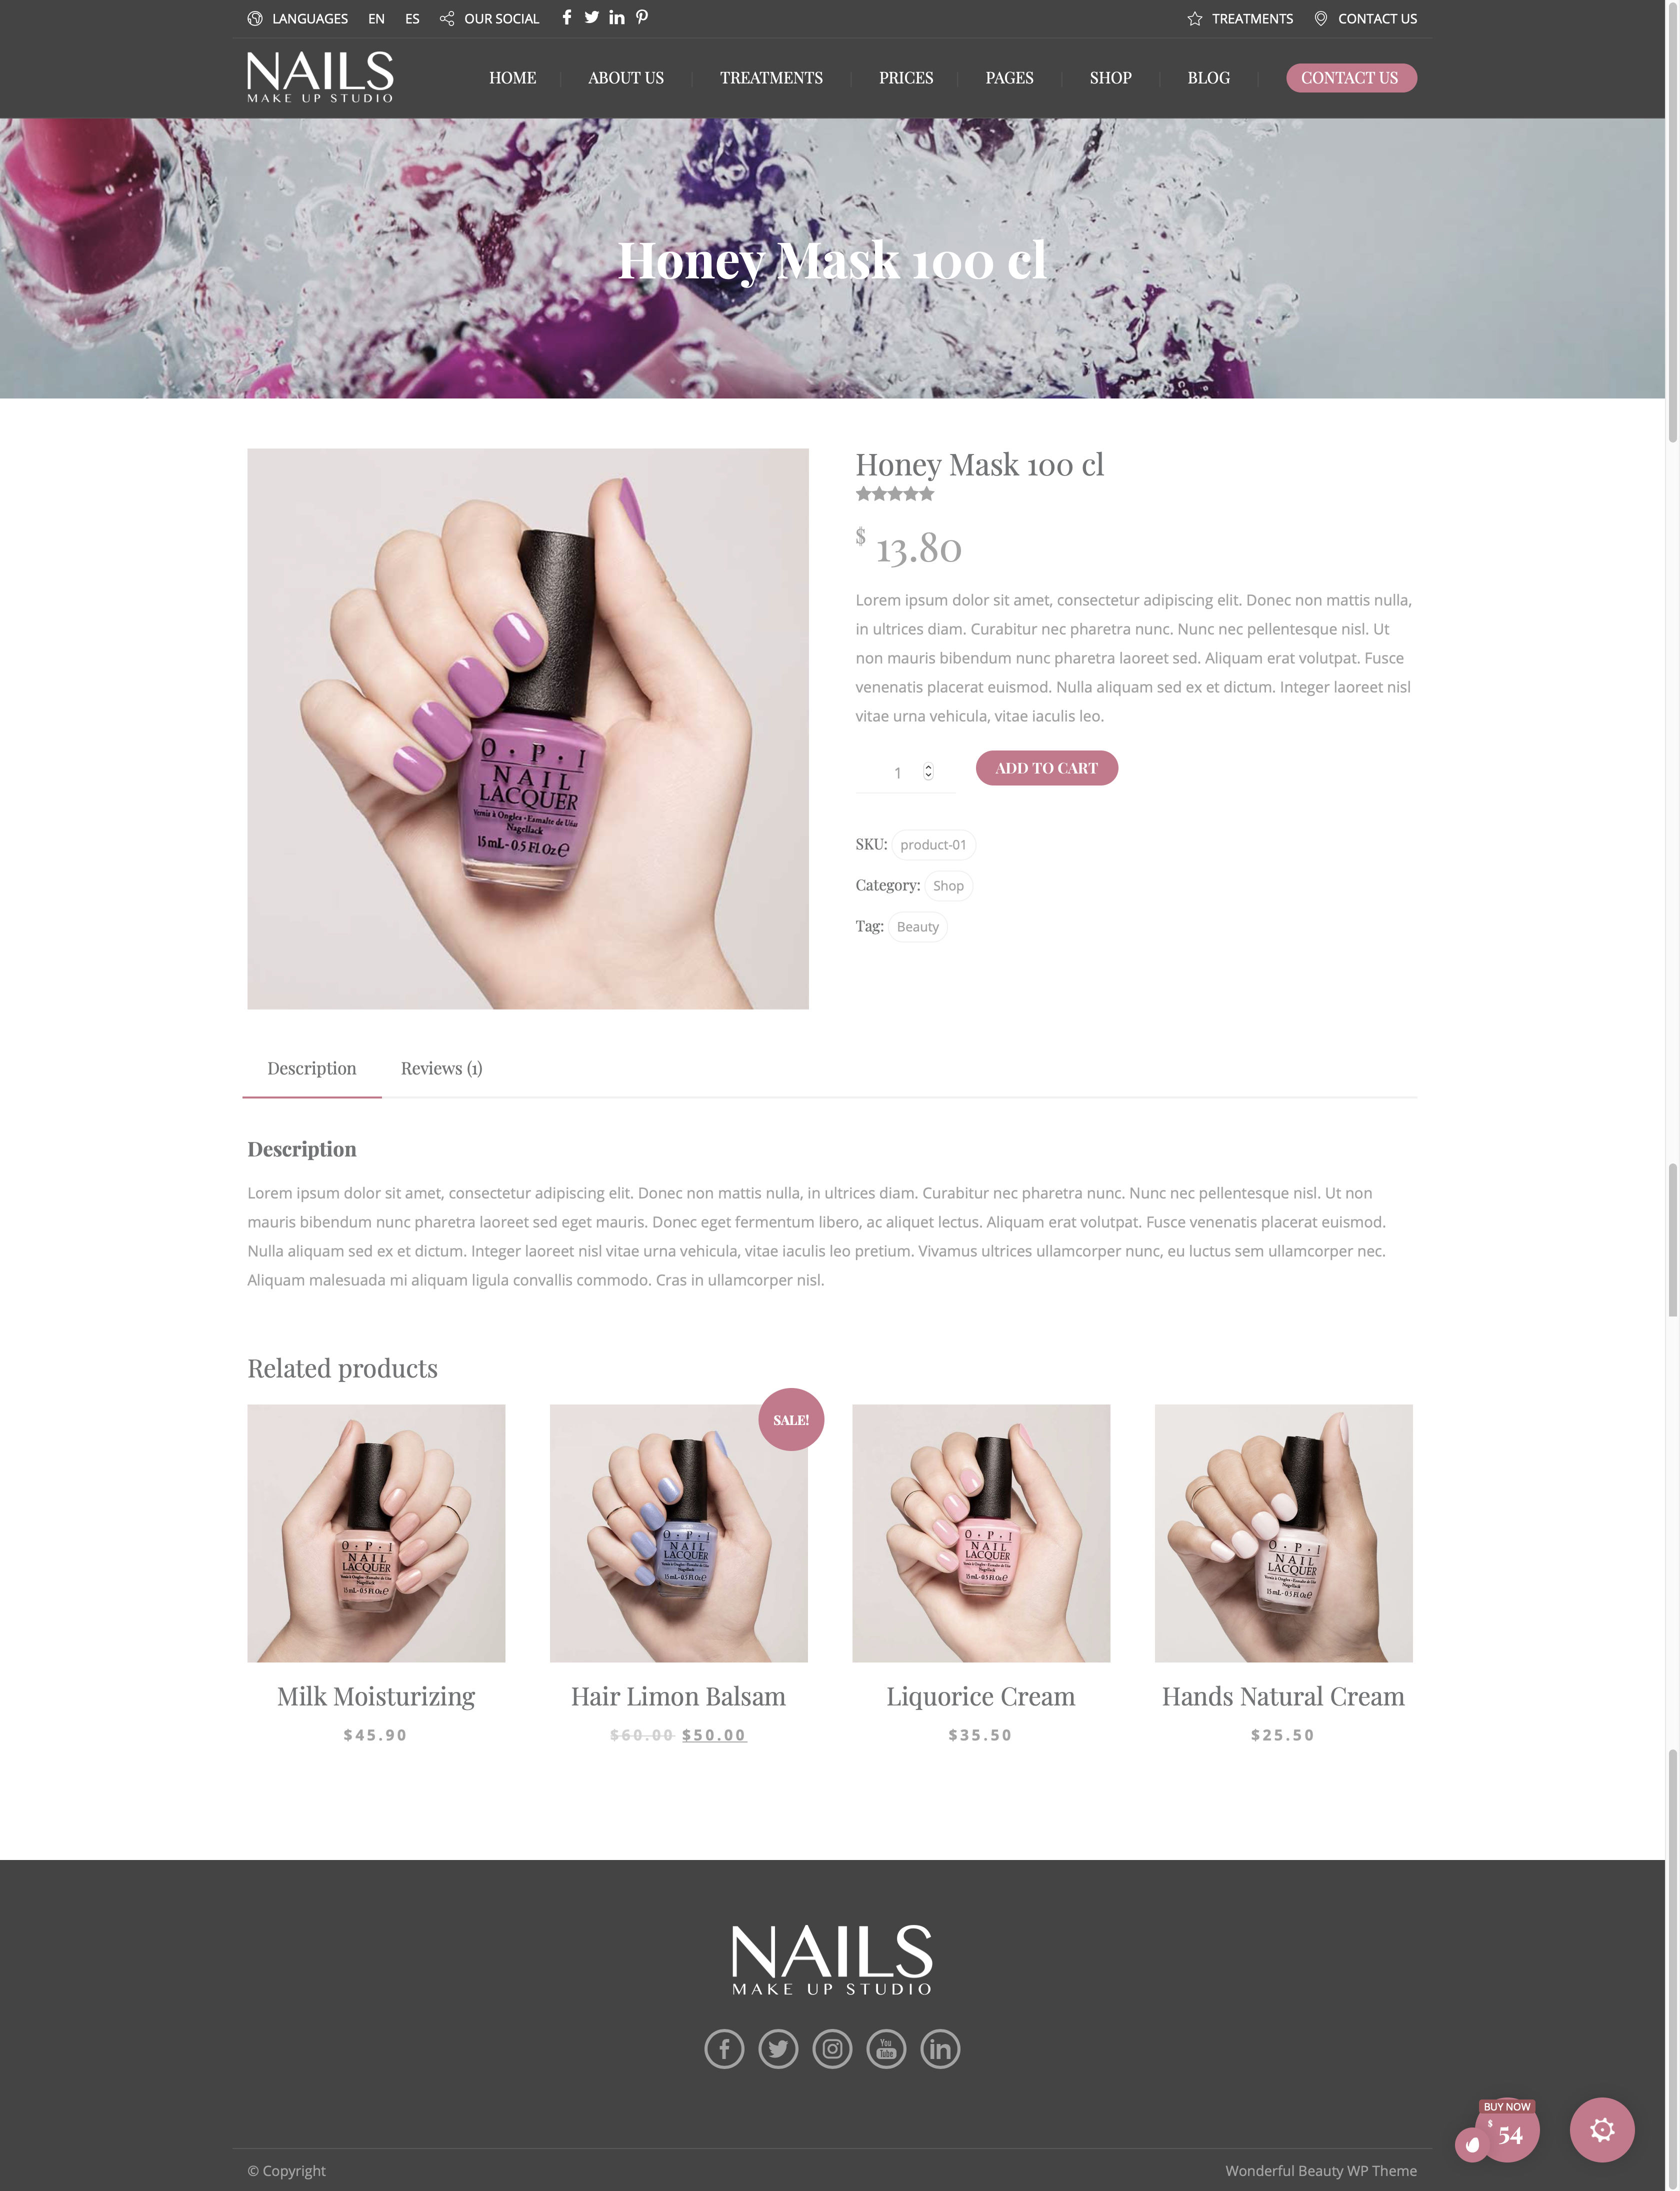 Beauty Wellness - Nails - Product